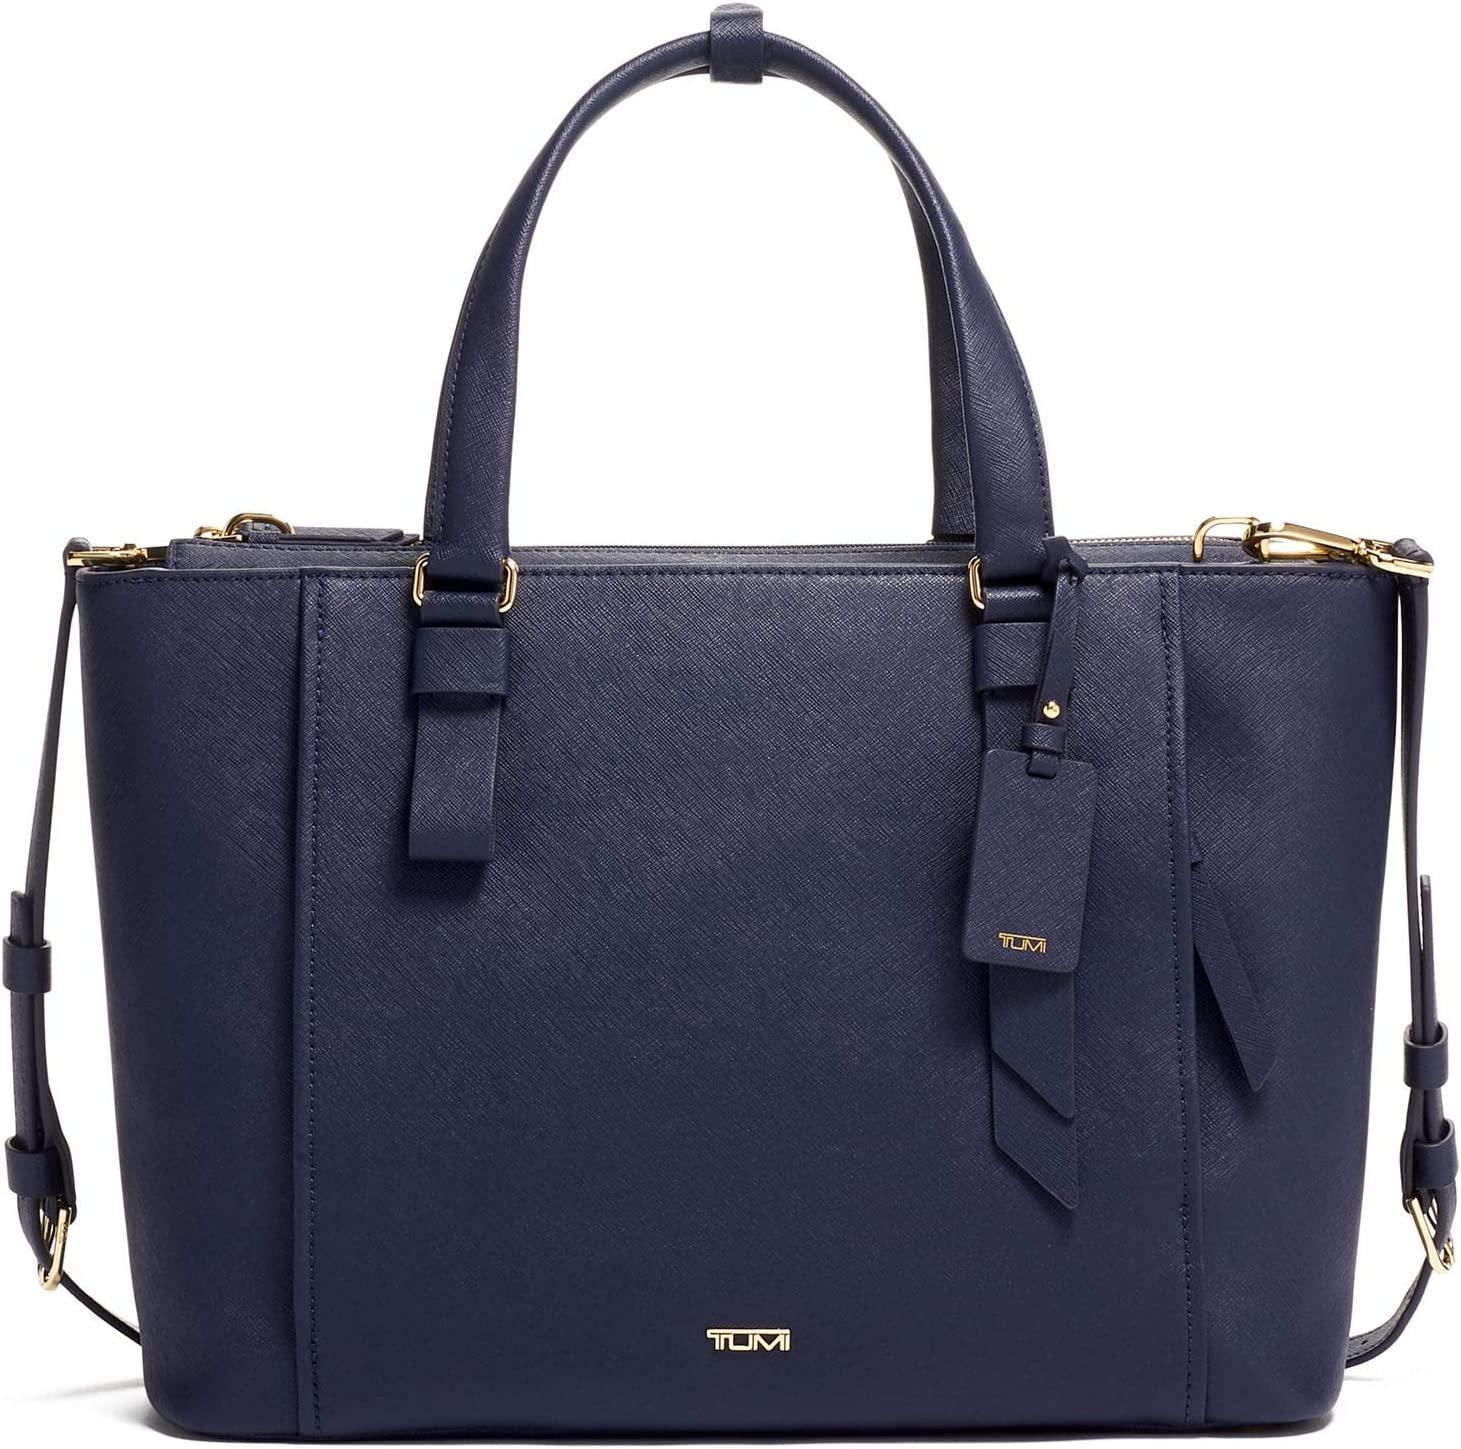 TUMI - Varek Park Leather Laptop Tote - 12 Inch Computer Bag for Men and Women - Navy